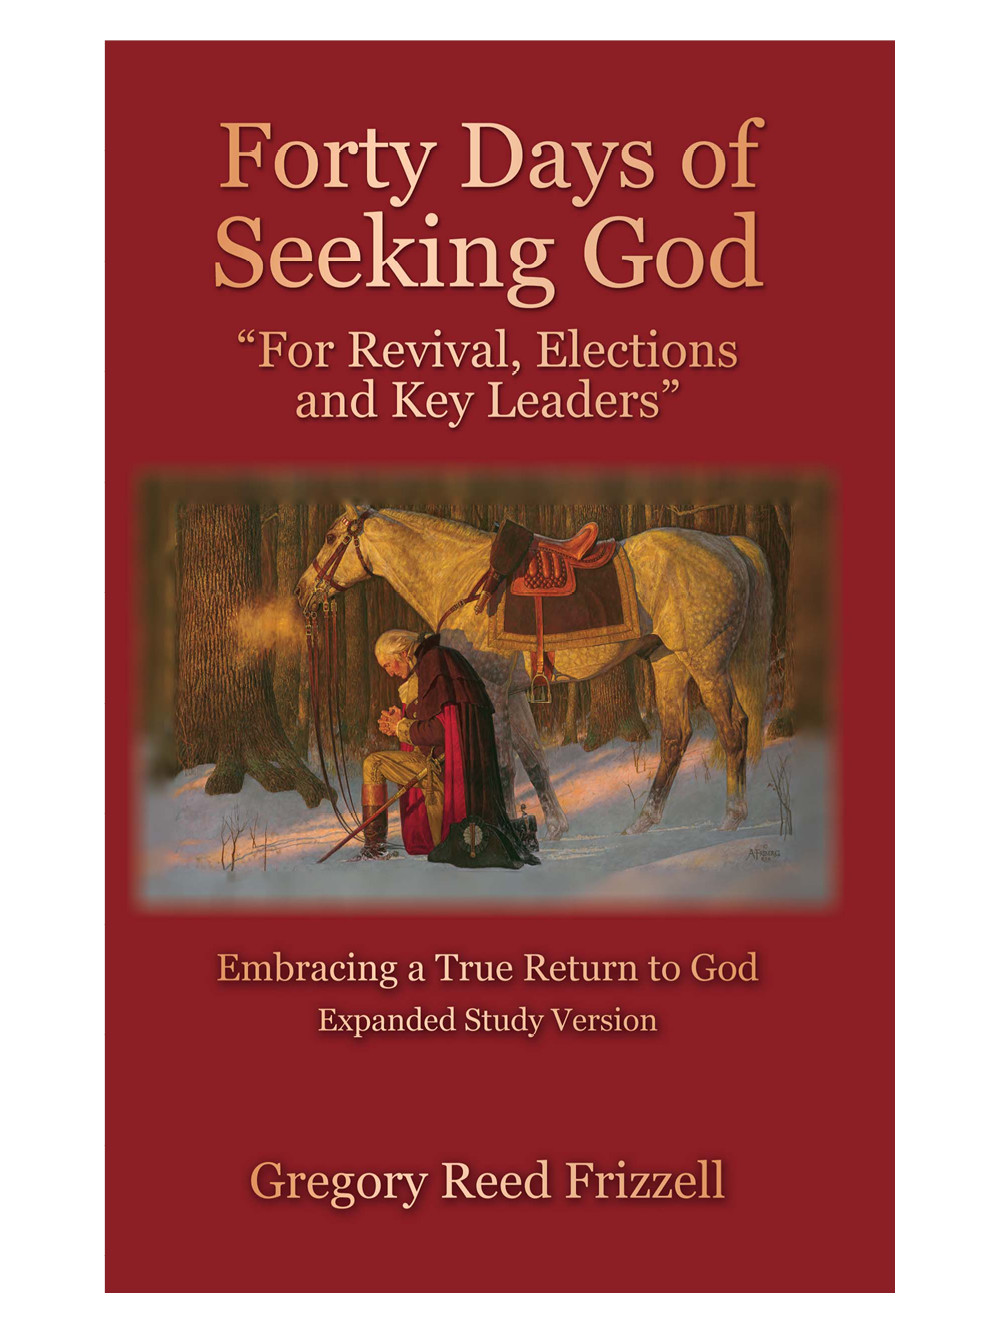 Forty Days of Seeking God - Gregory Reed Frizzell